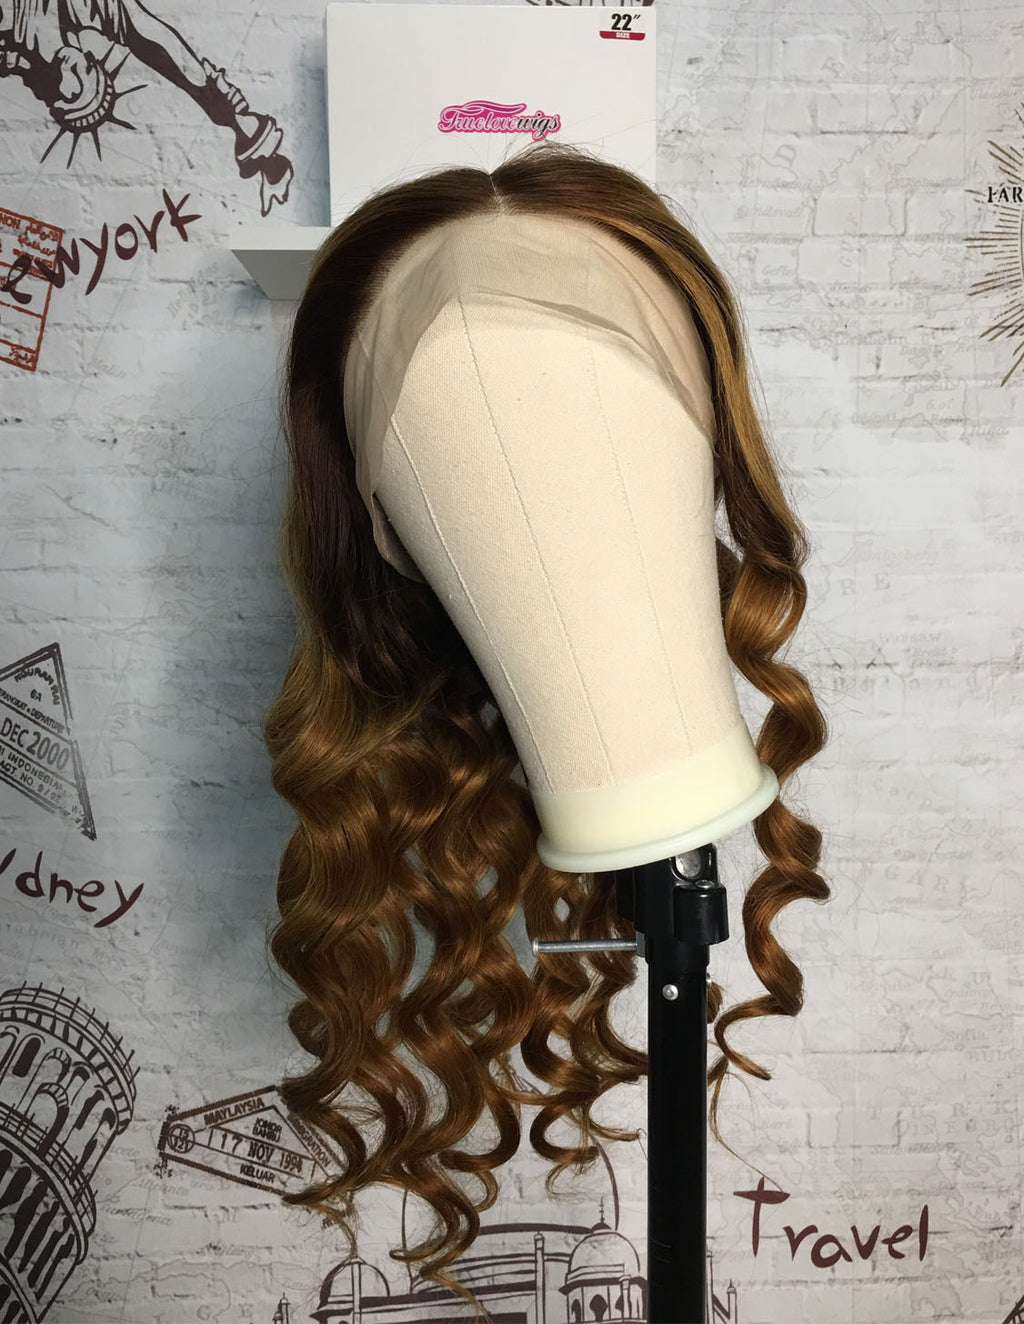 Mix Color 10A Grade Human Hair Body Wave Wig The Same As The Hairstyle and Color In The Picture Shown - Truelovewigs.com